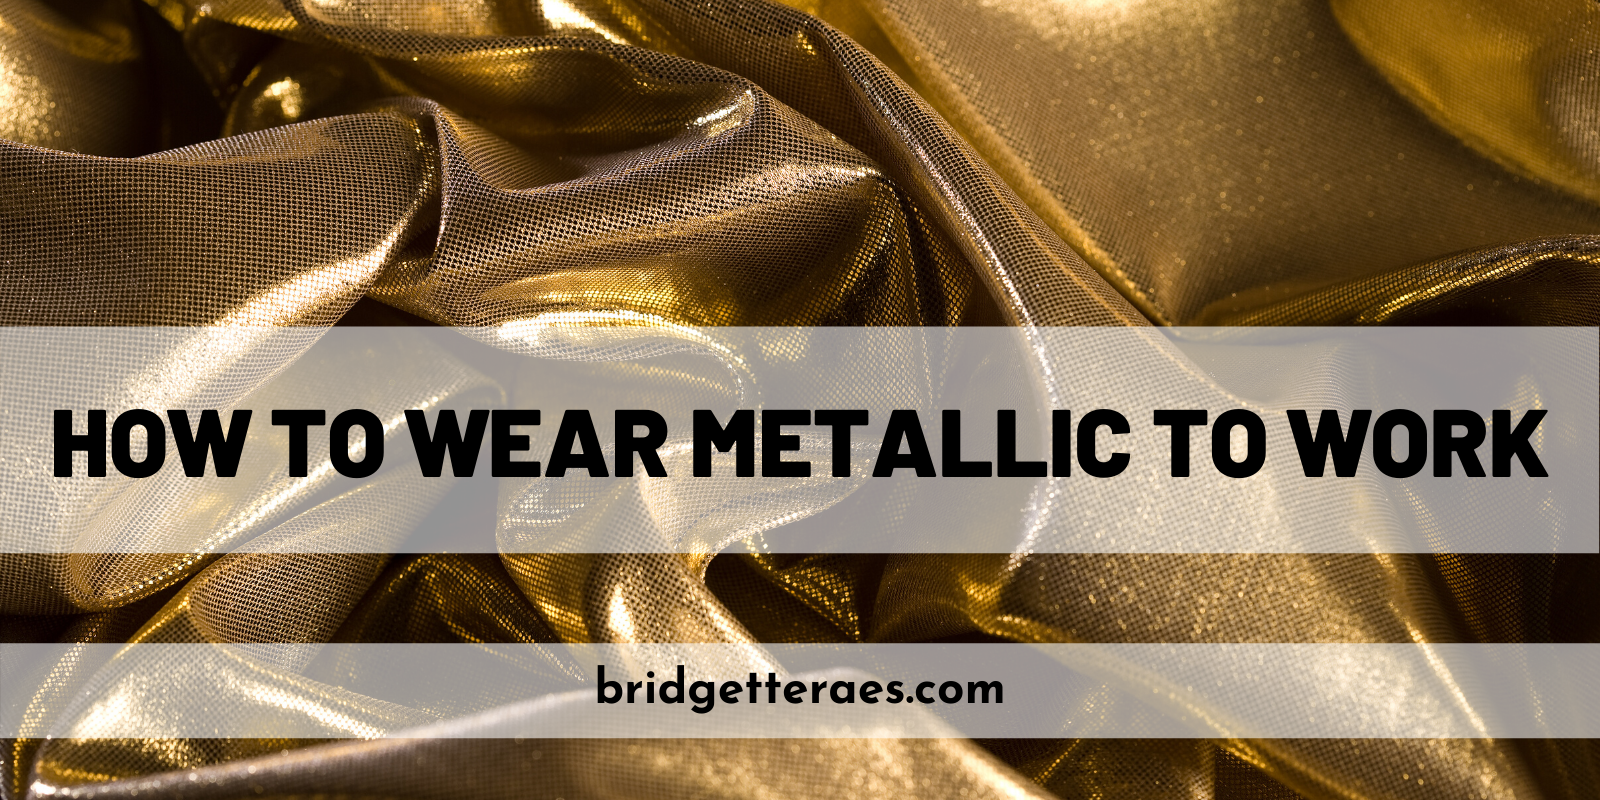 How to Wear Metallic to Work